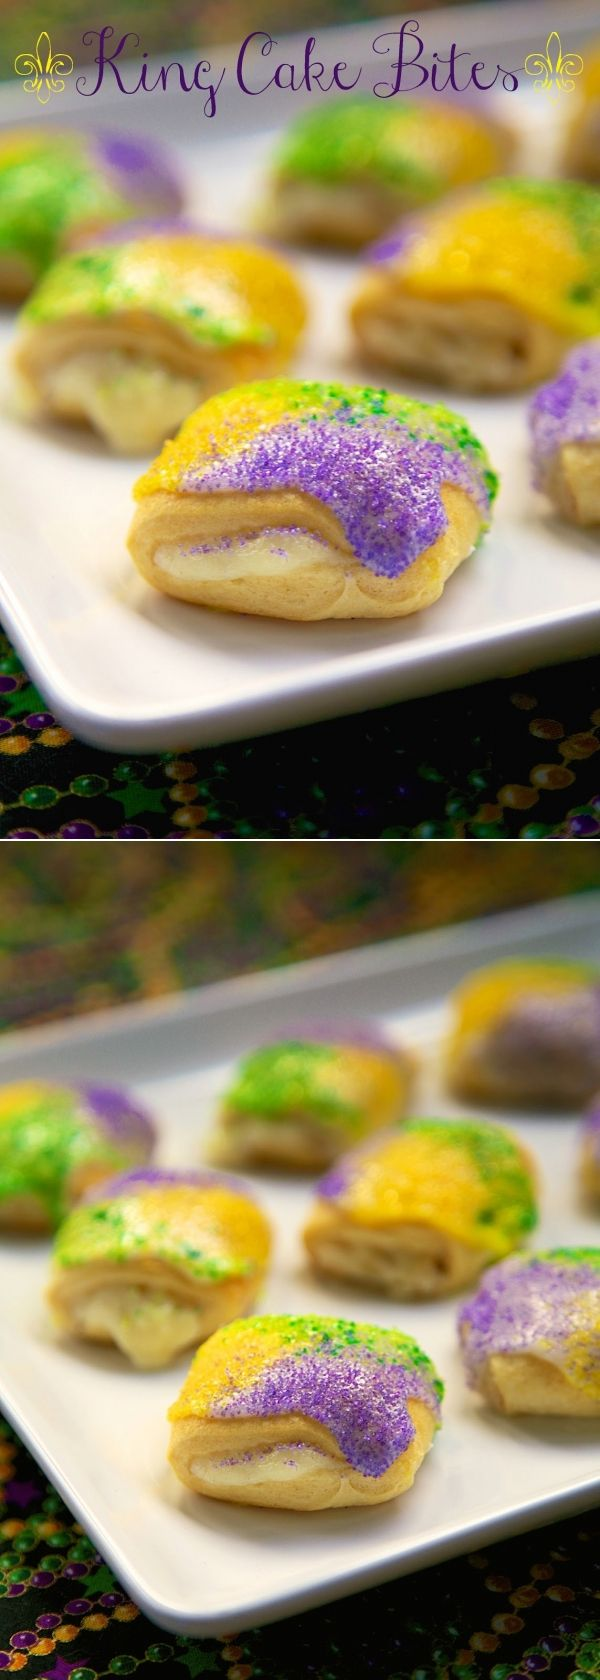 Easy King Cake Bites:  Present rolls filled with cinnamon and cream cheese, topped with icing and colored sugar...DELICIOUS! They really do taste like little King Cake bites. These would be great for a class party, Fat Tuesday breakfast or just anytime for a treat!